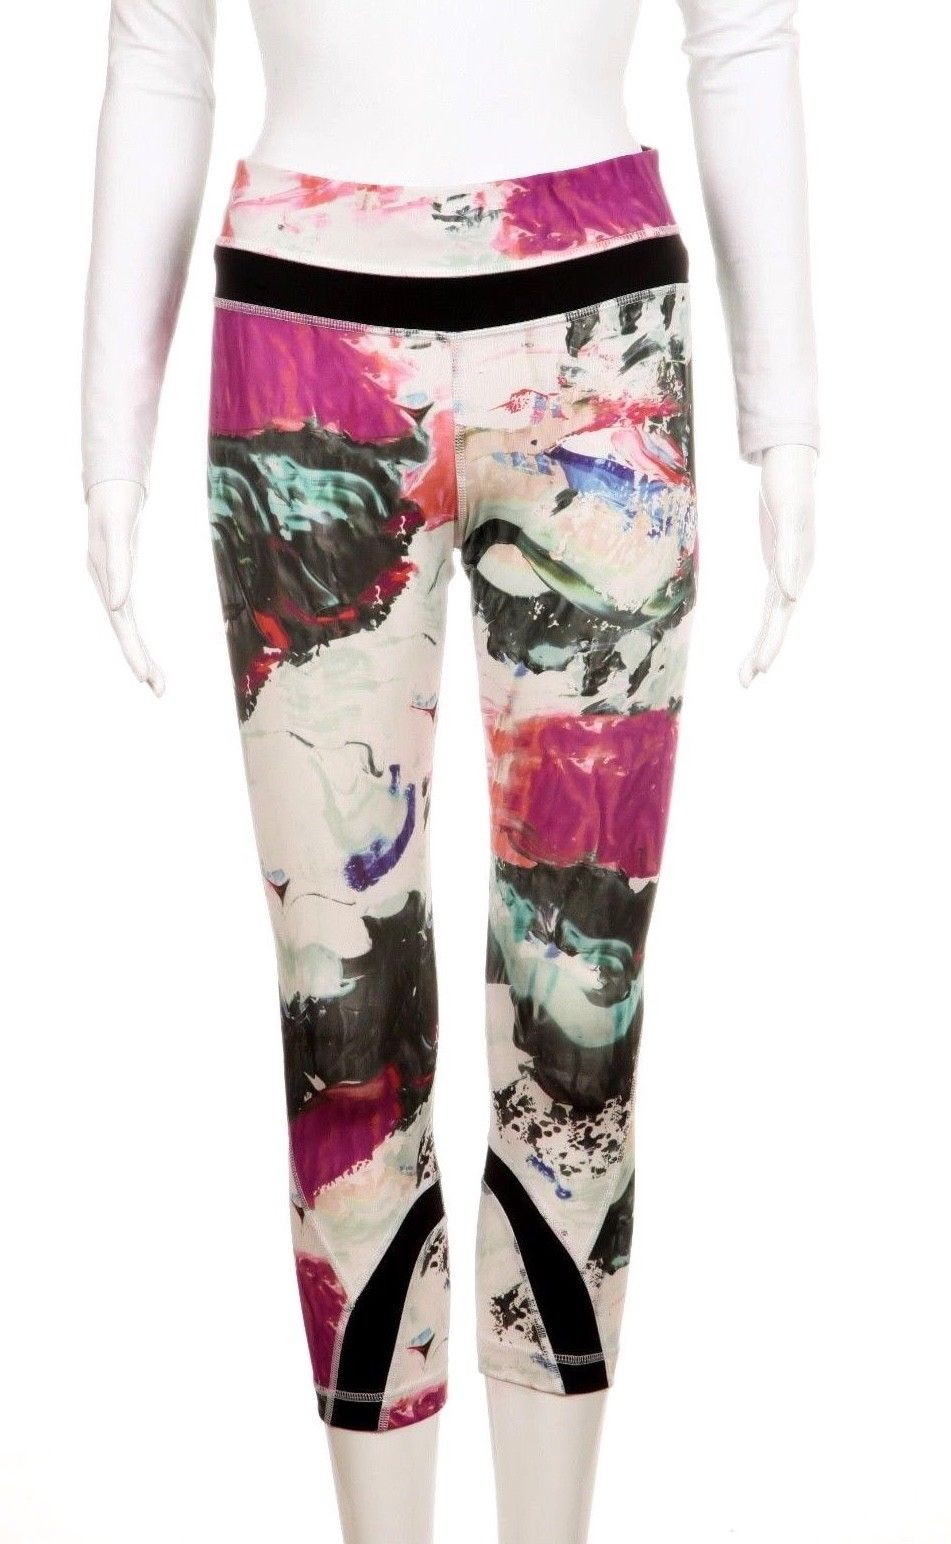 3532b1a0a4 LULULEMON Inspire Run Cropped Pink Printed Pants Size 4 – Style-Hunting